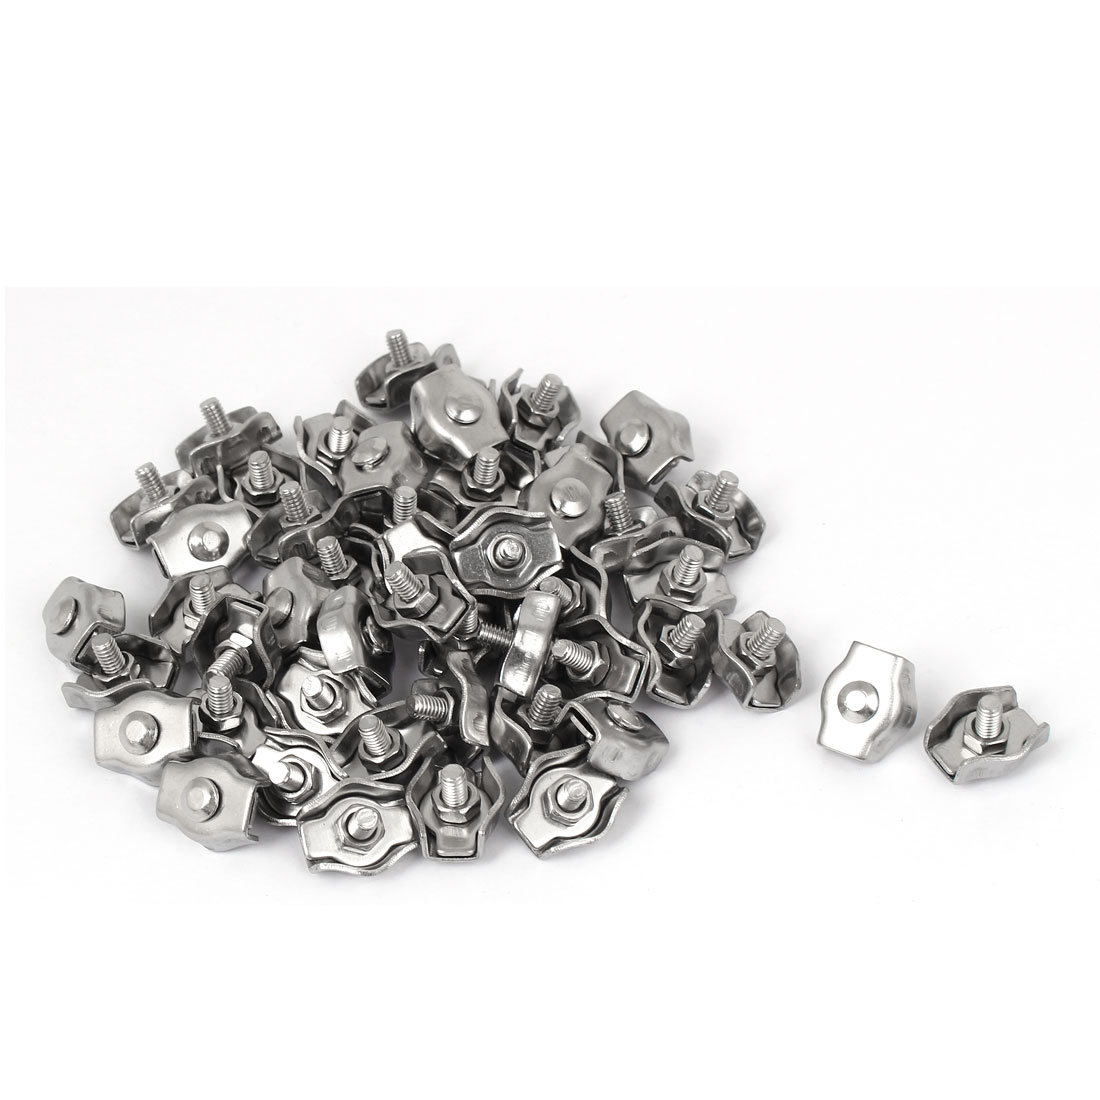 Stainless Steel Simplex Single Bolt Clip Cable Clamp 50 Pcs for 3mm Wire Rope